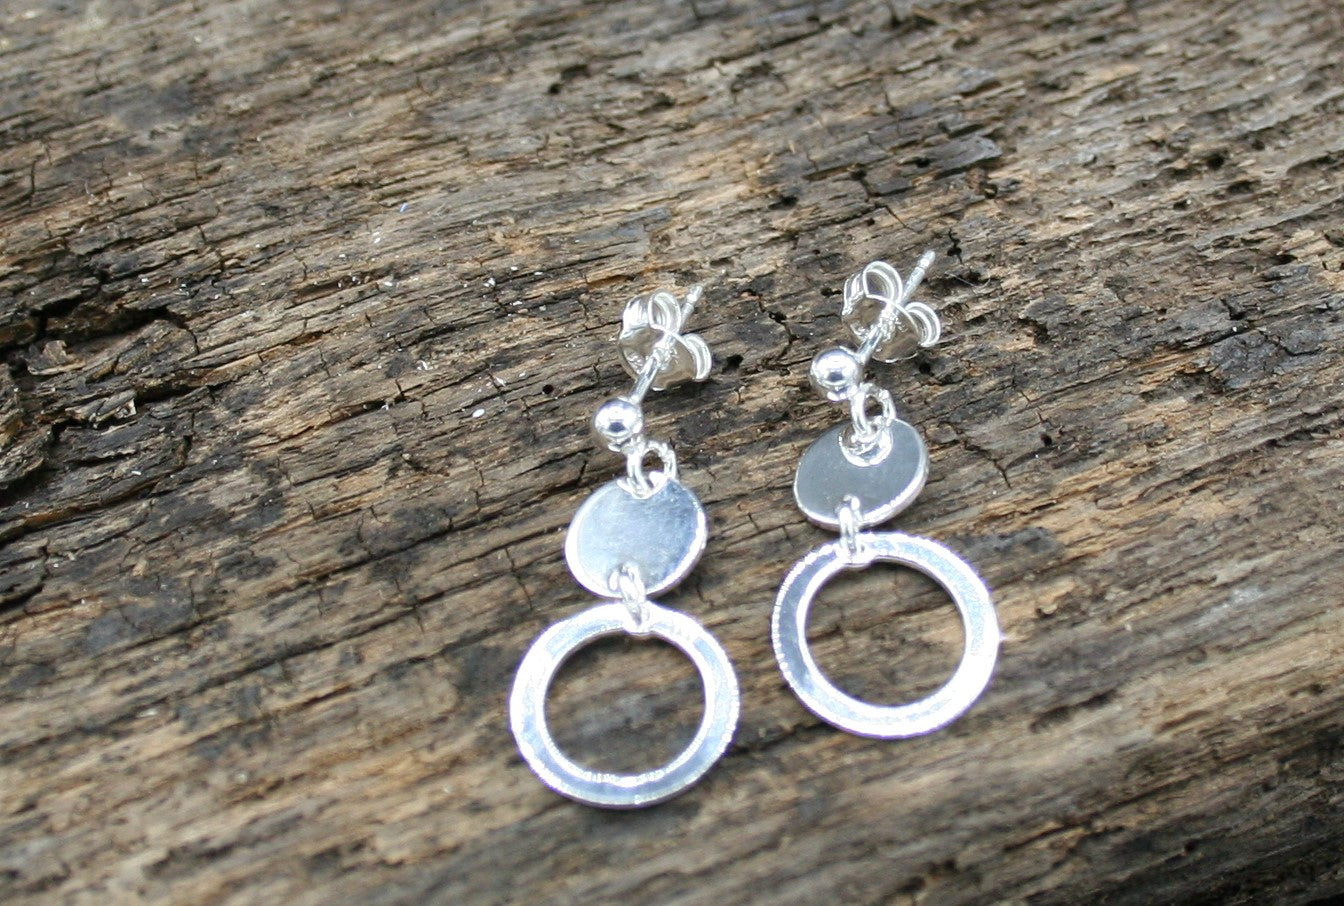 Sterling Silver Polished disc polished ring drop earrings on posts with butterfly clasp 6mm and 11mm